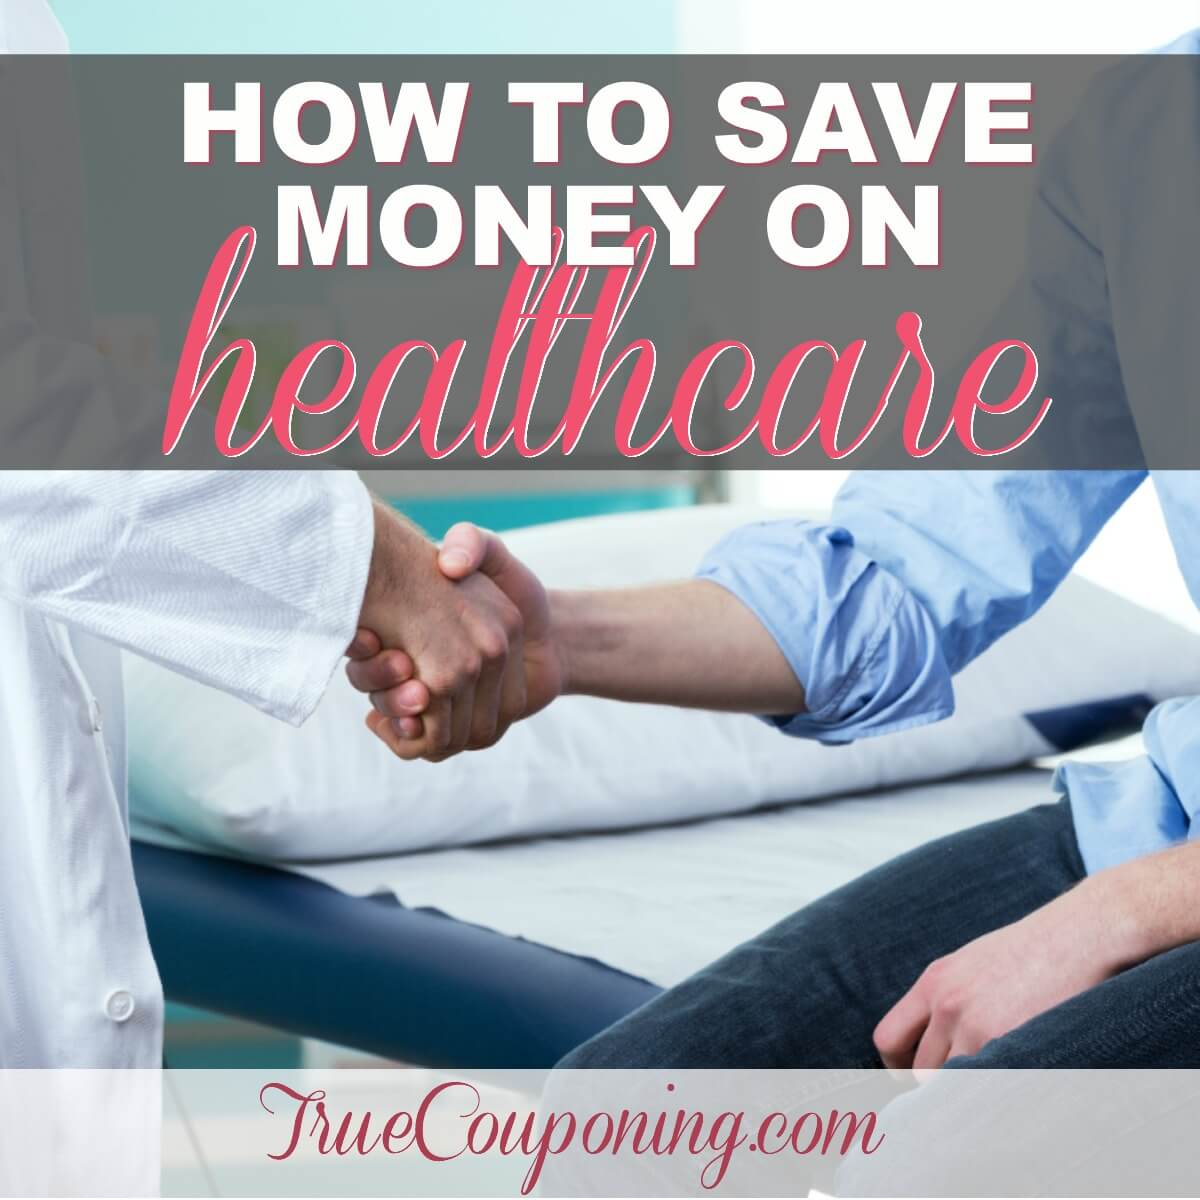 How To Save Money On Healthcare